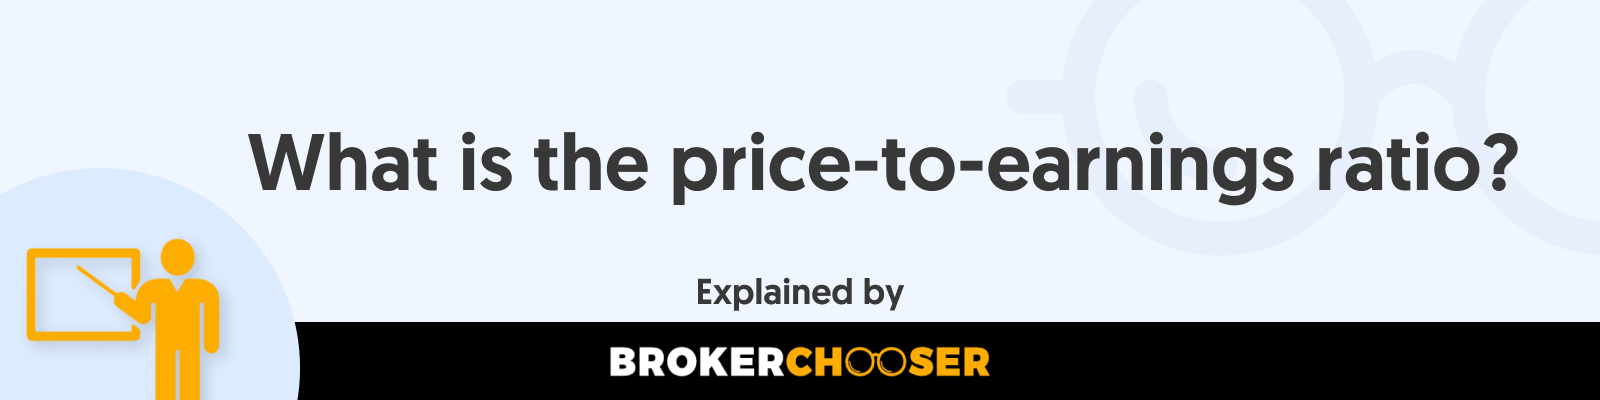 What is the price to earnings ratio?